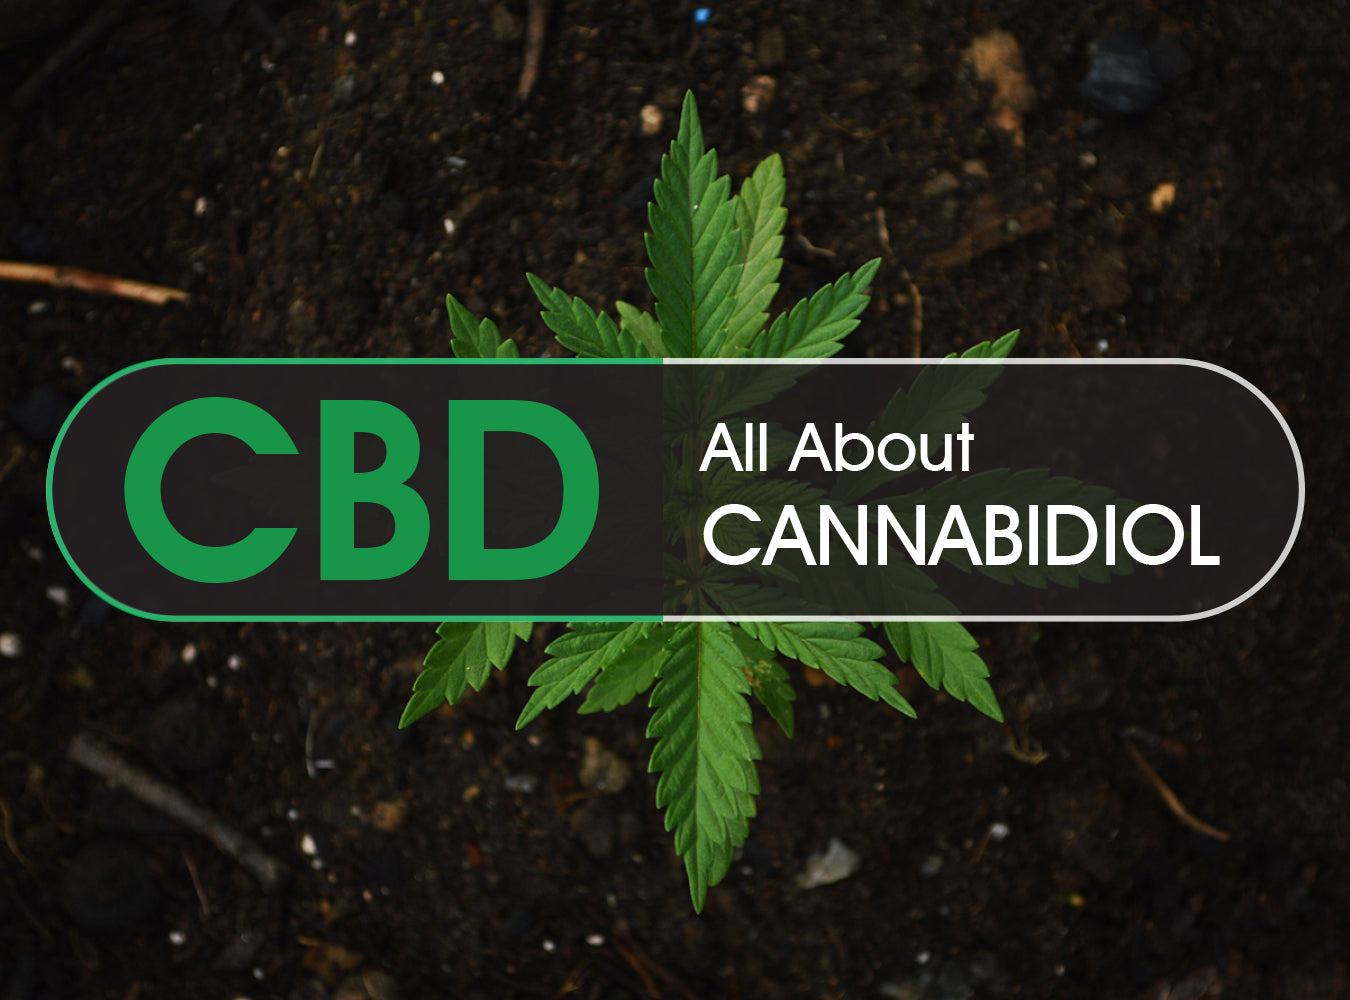 All About CBD Infographic